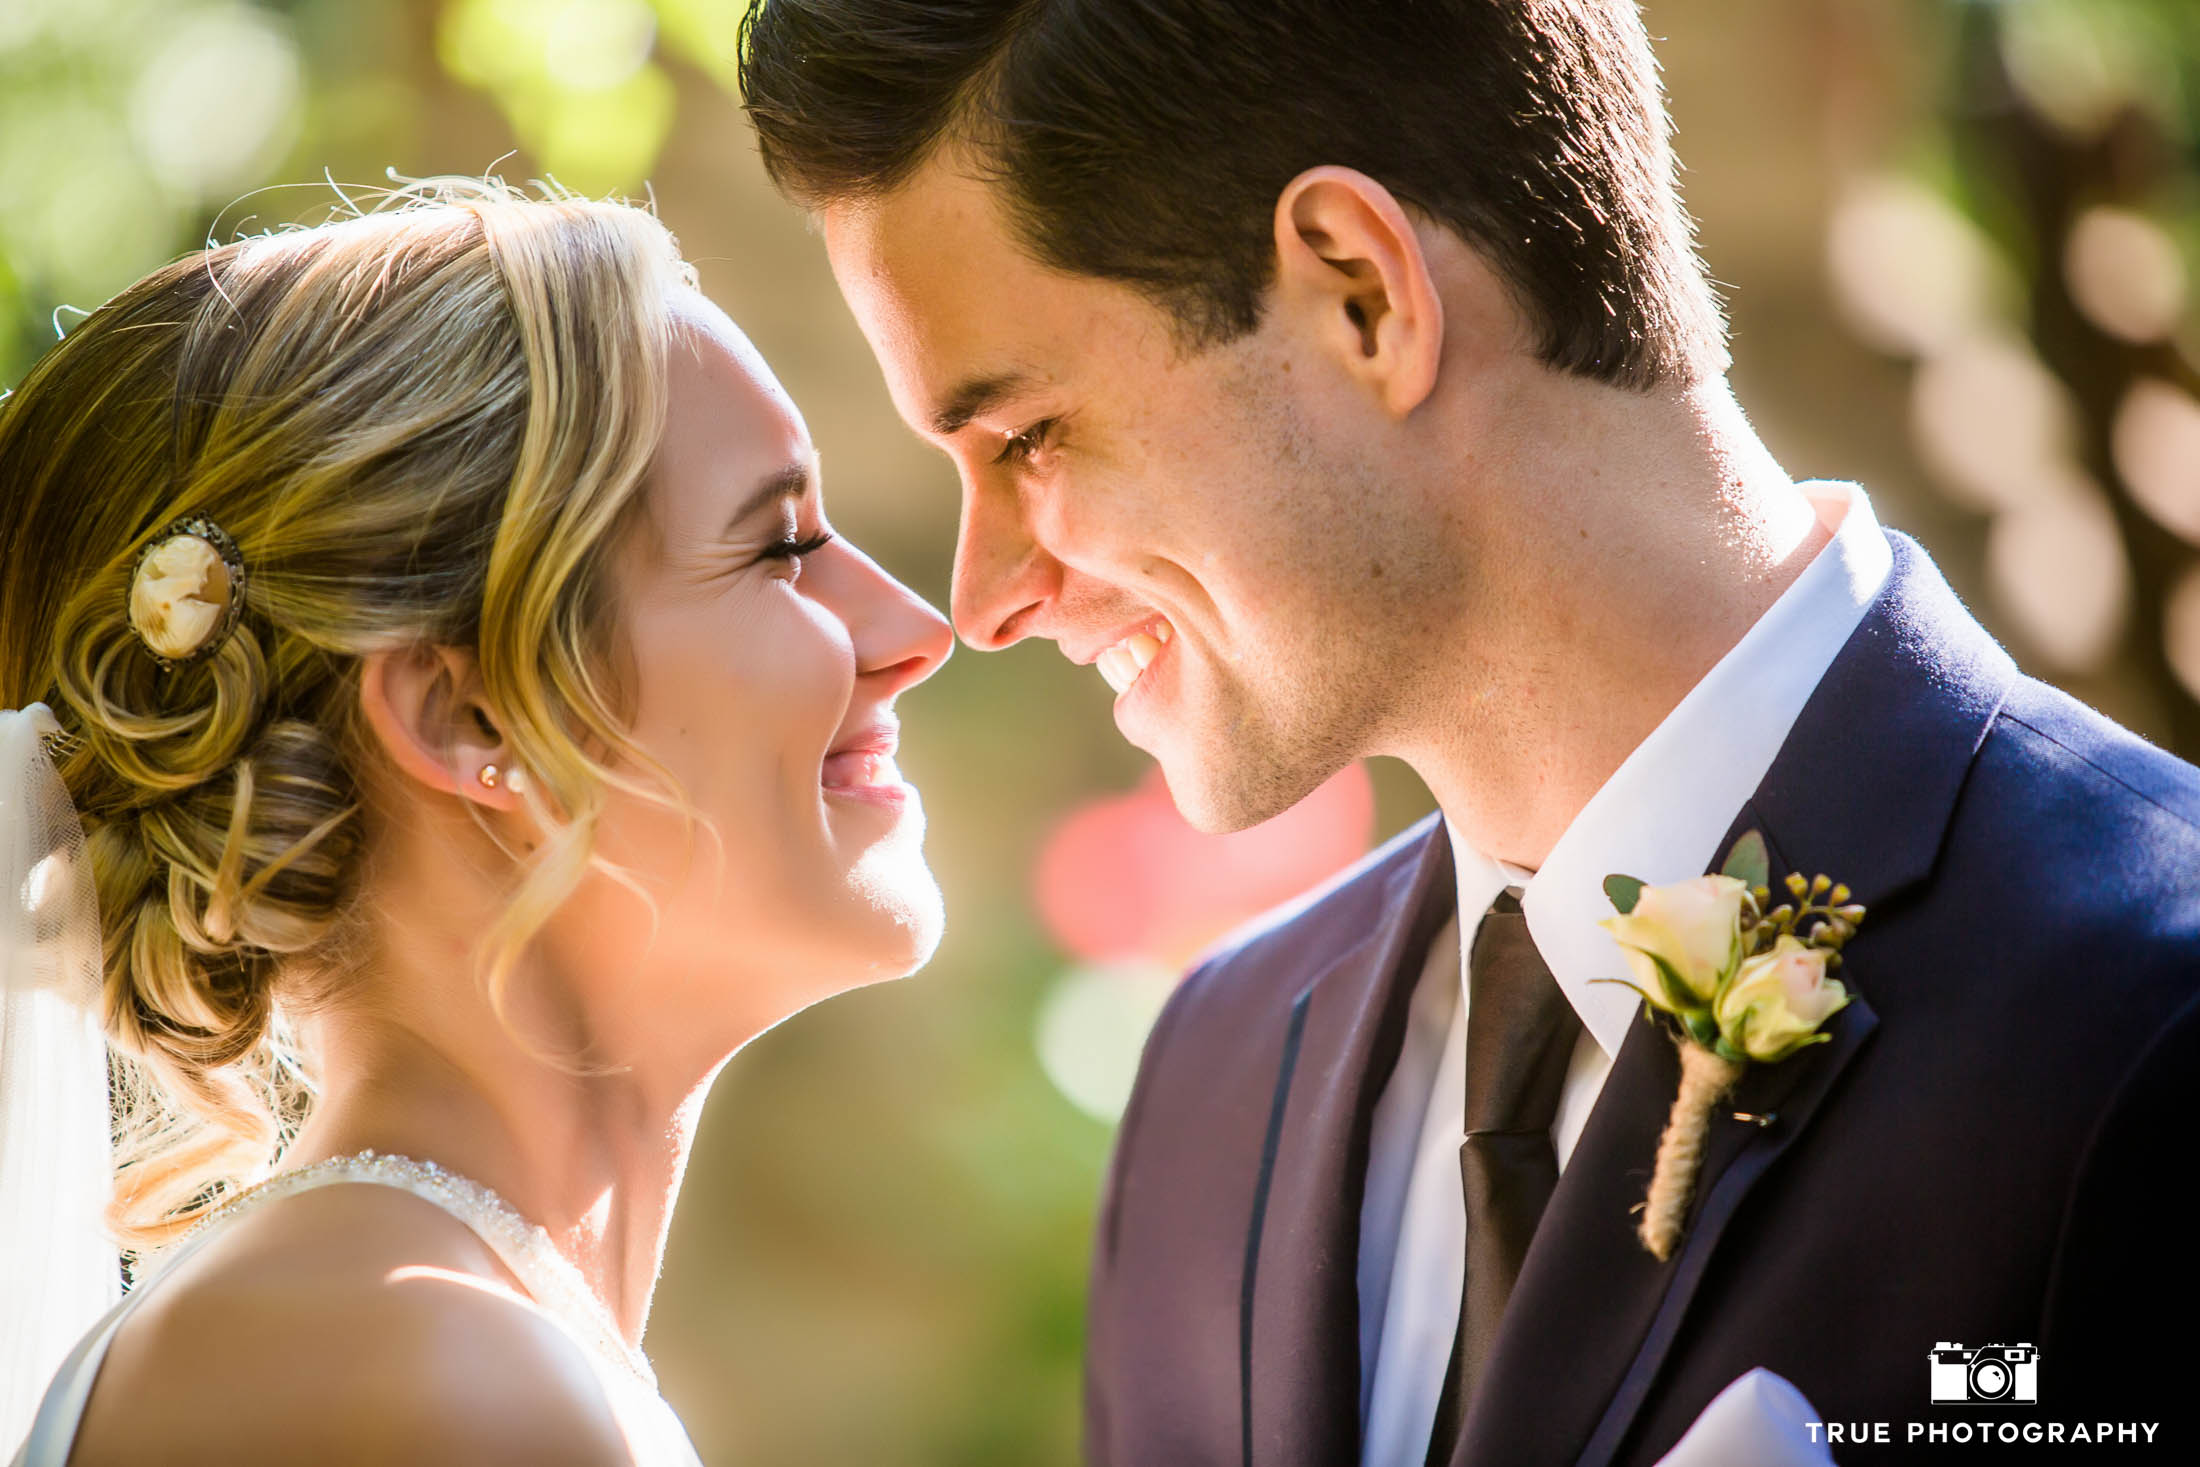 Romantic bride and groom look into each other's eyes and touch noses